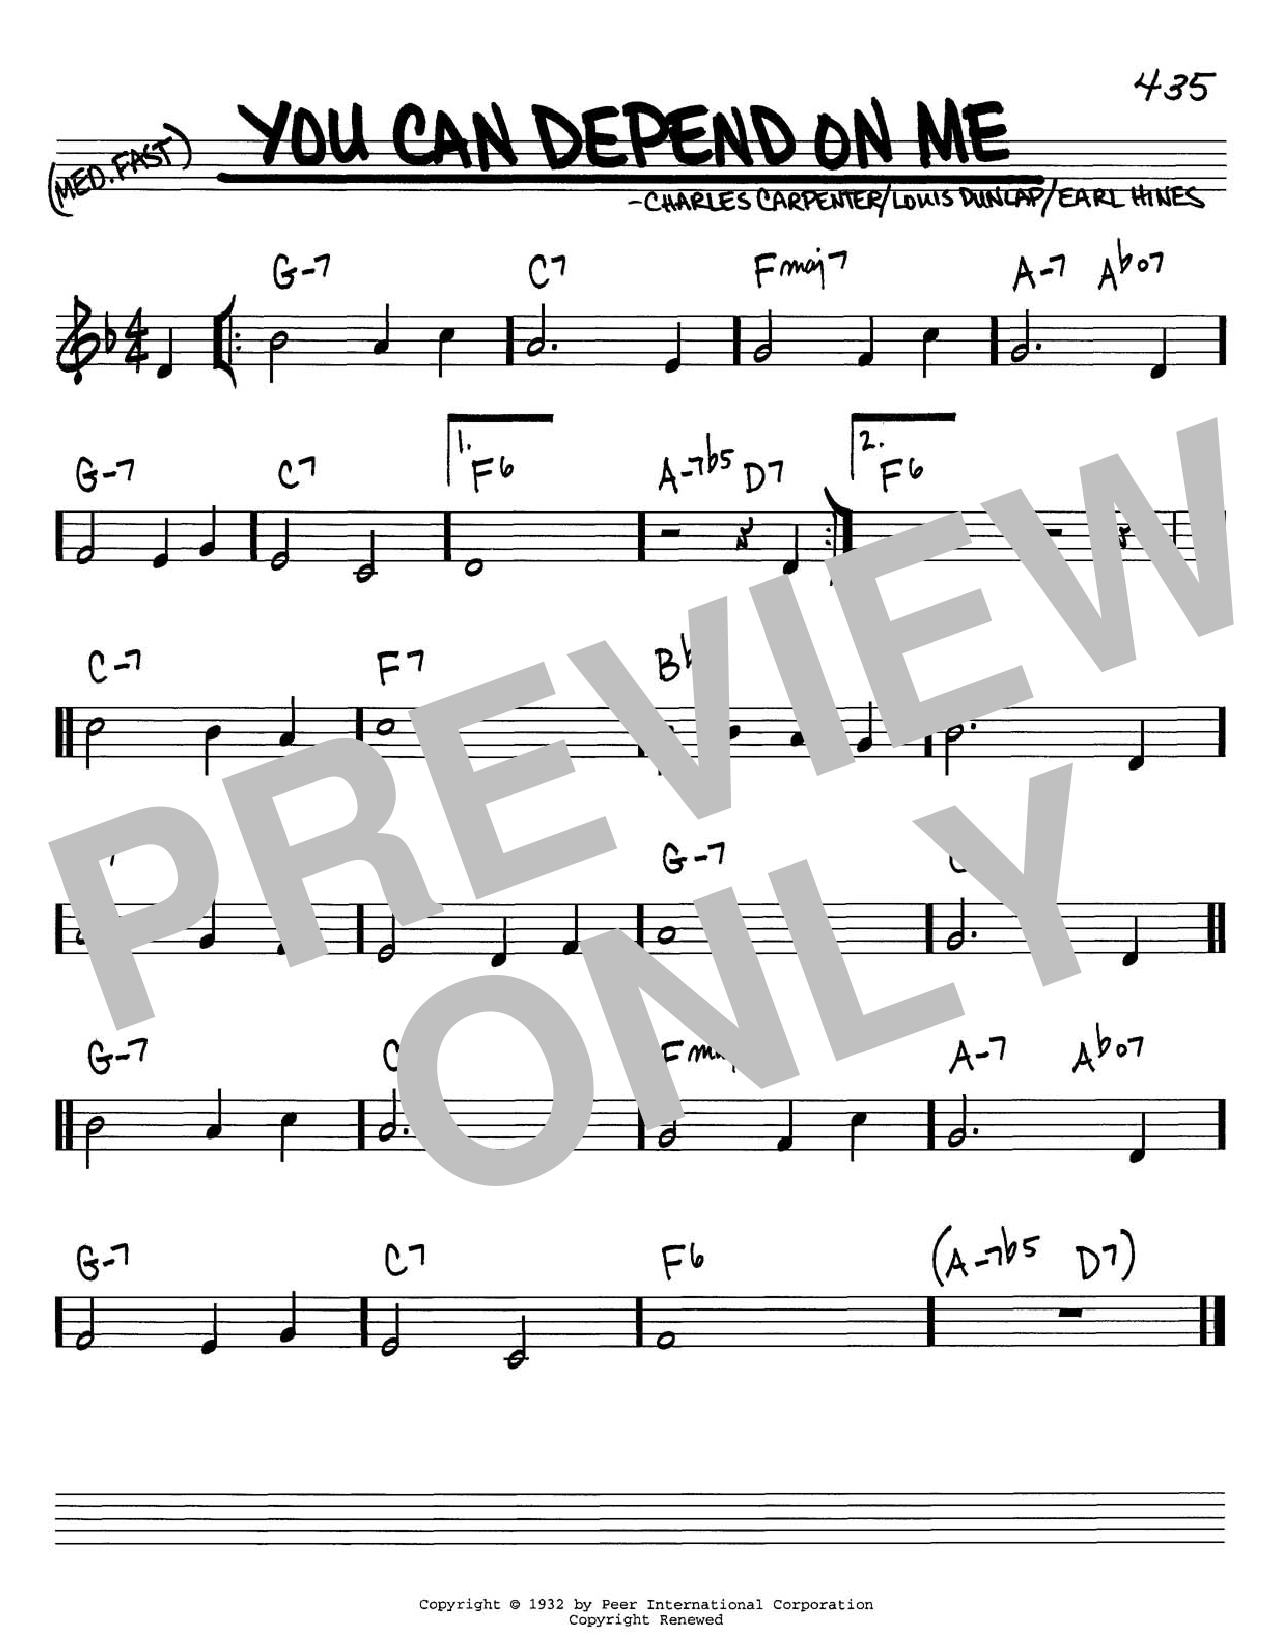 Earl Hines You Can Depend On Me sheet music notes and chords